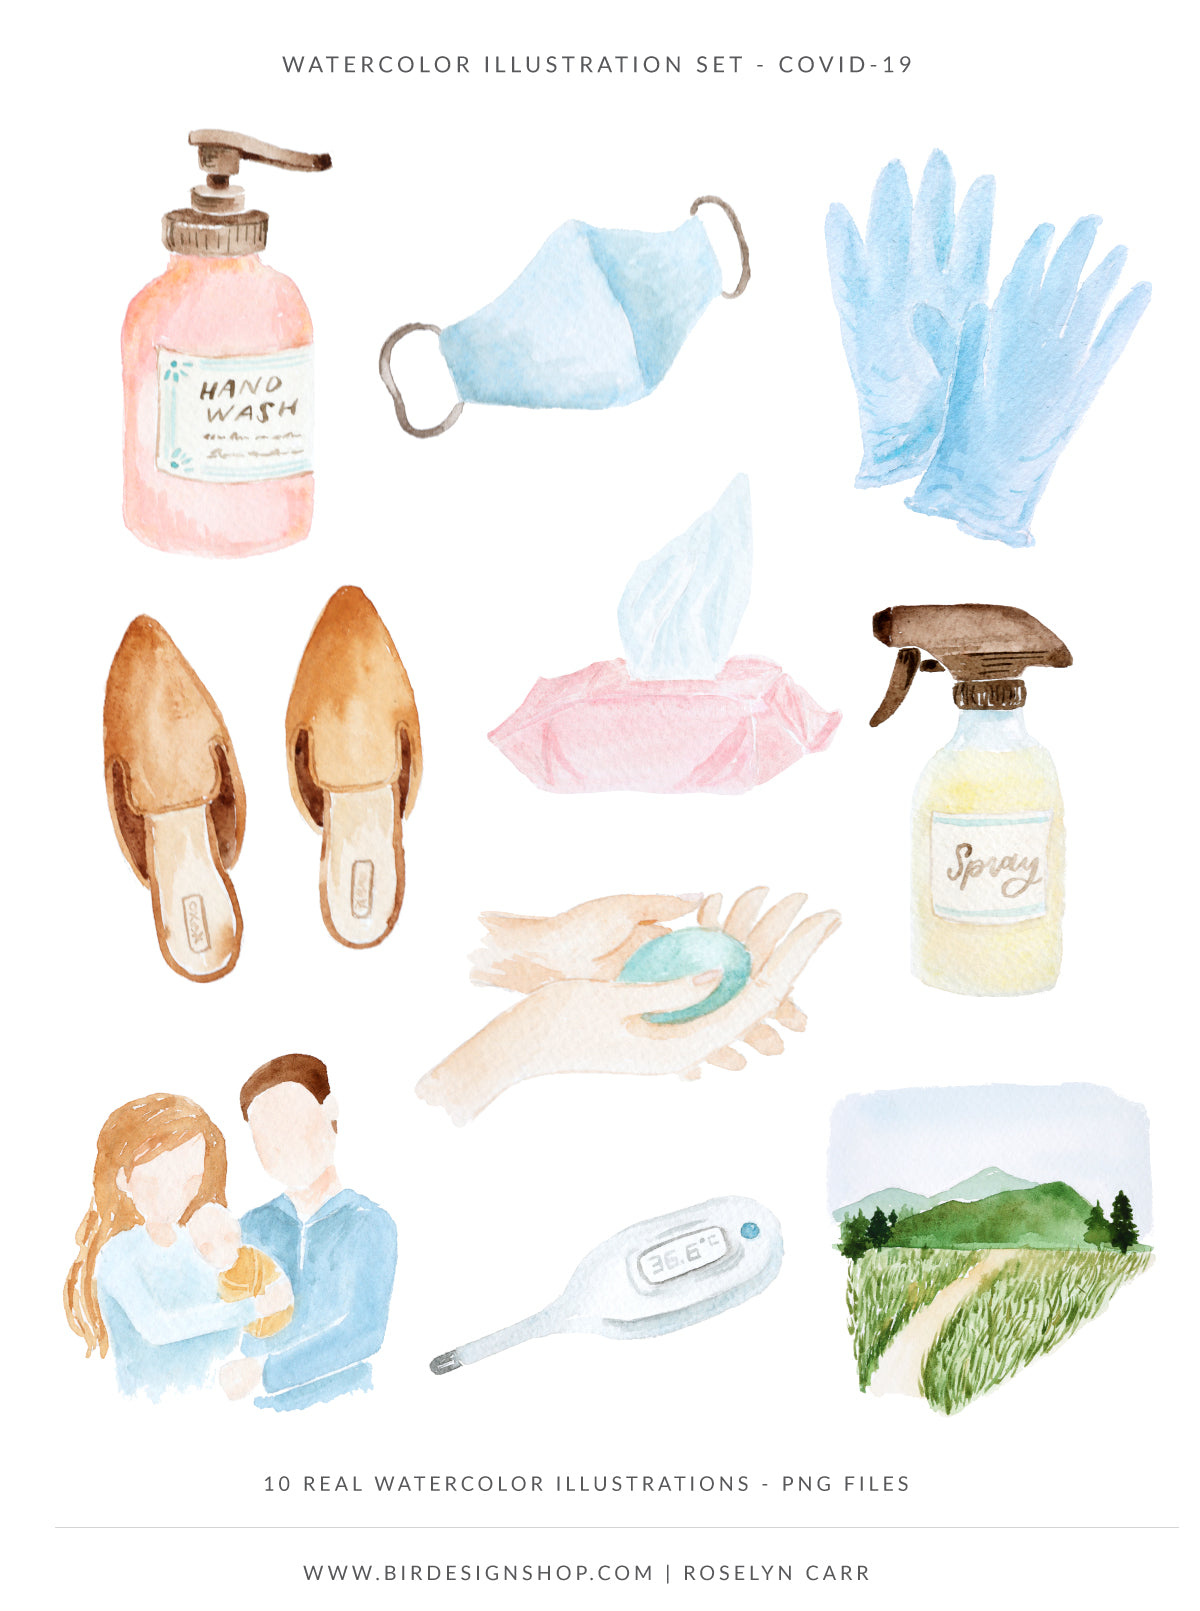 Covid-19 Safety Guidelines Watercolor Illustrations